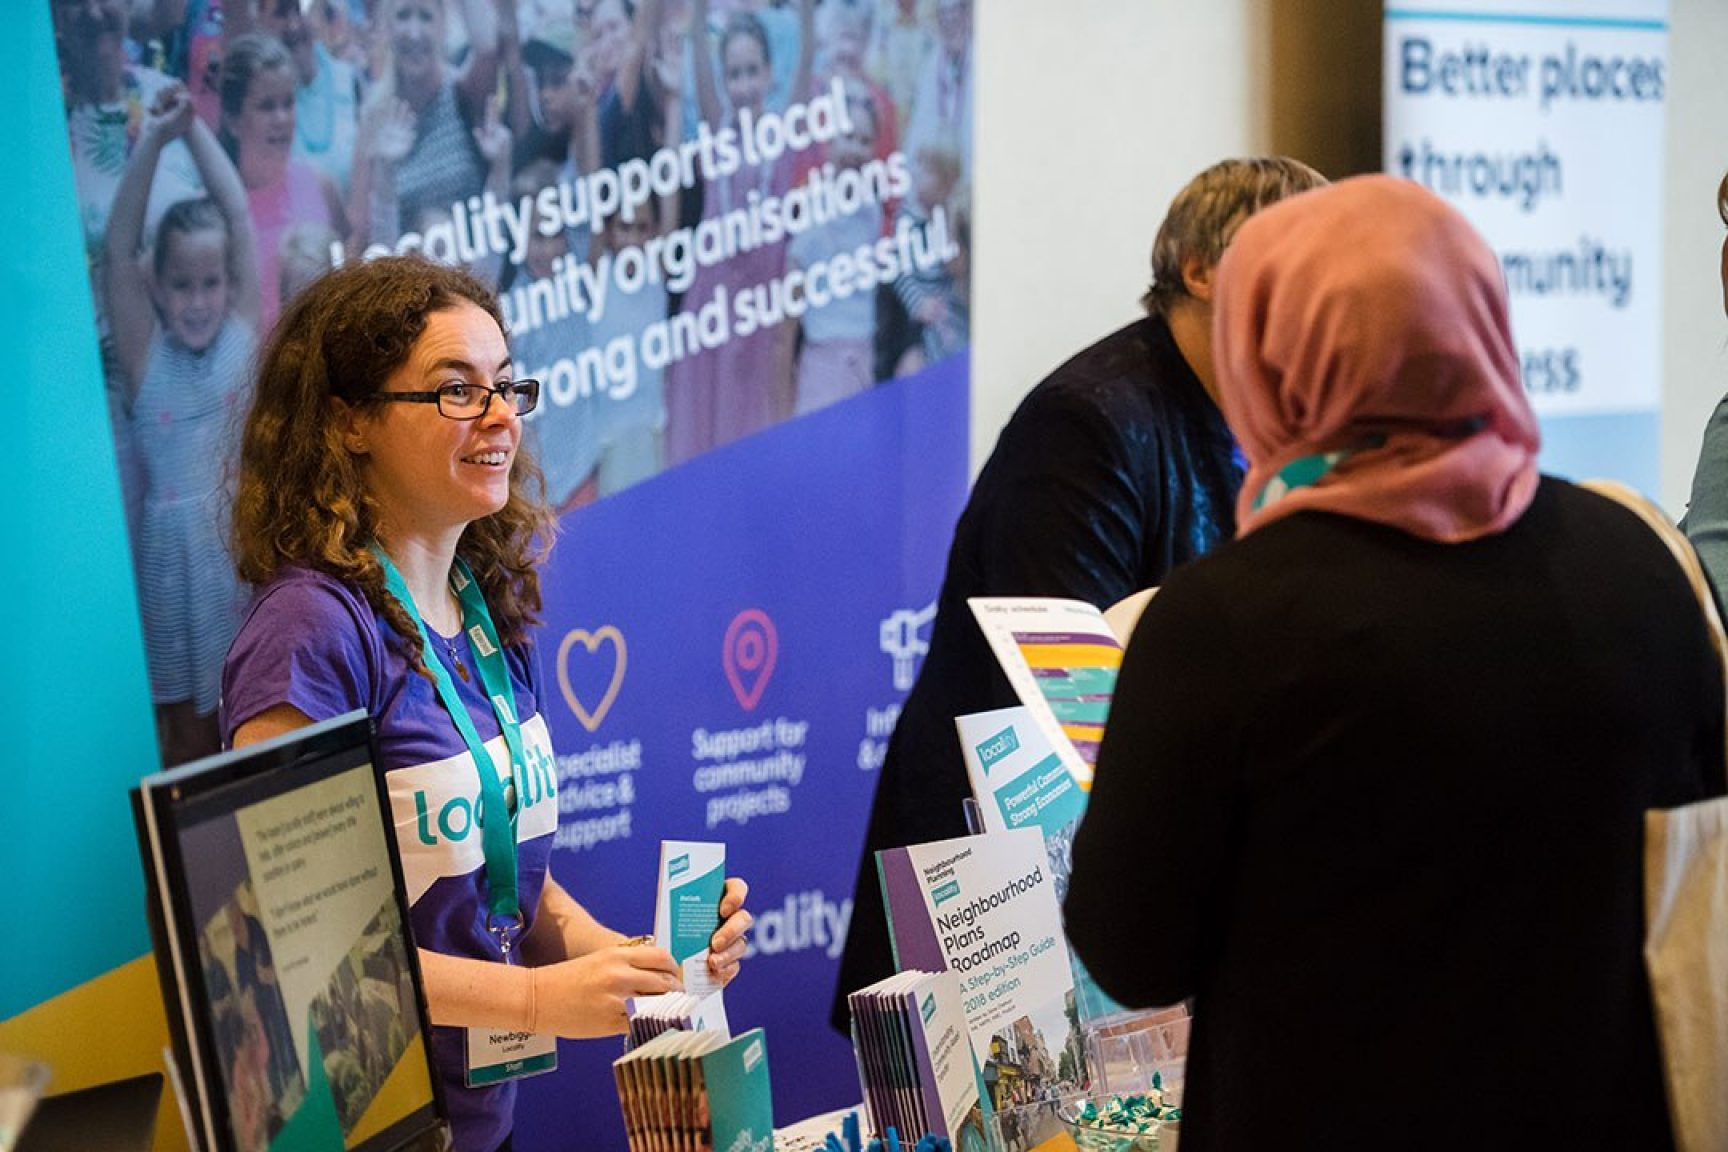 A Locality staff member at a Locality event stand chatting to someone. The Locality staff member is smiling.